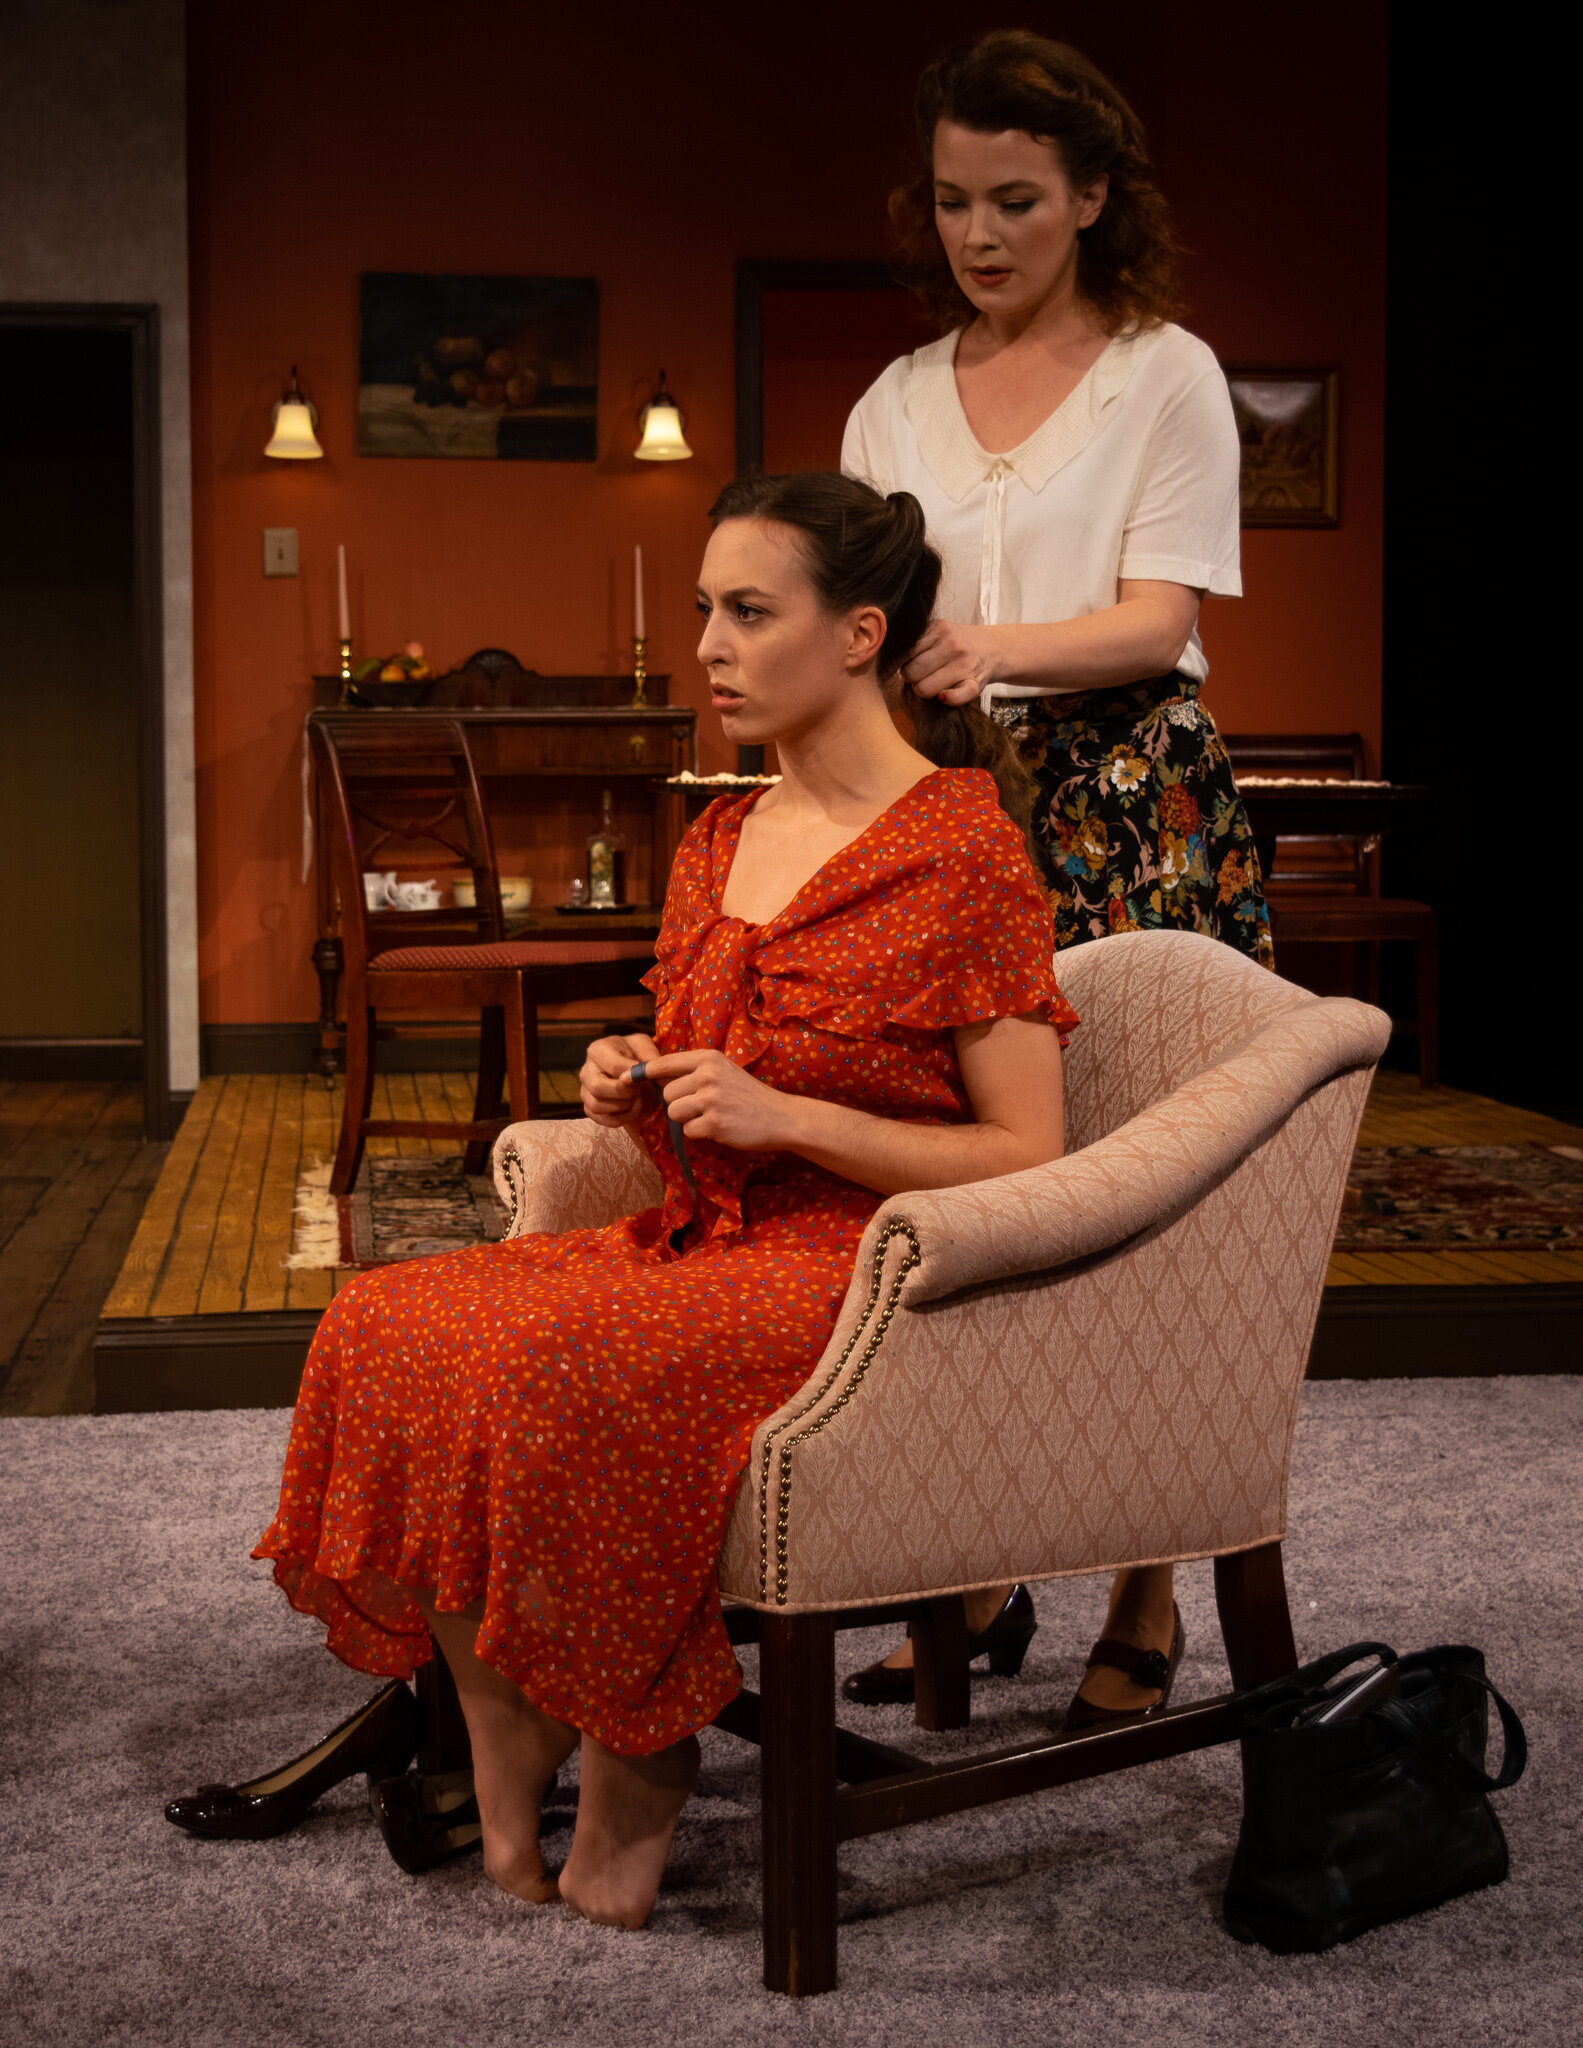 Lusia Pechenik (Katharina Schmidt), seated, Rose Weiss (Laura Sudduth), standing in A Shayna Maidel at Playhouse on Park (photo by Meredith Longo)